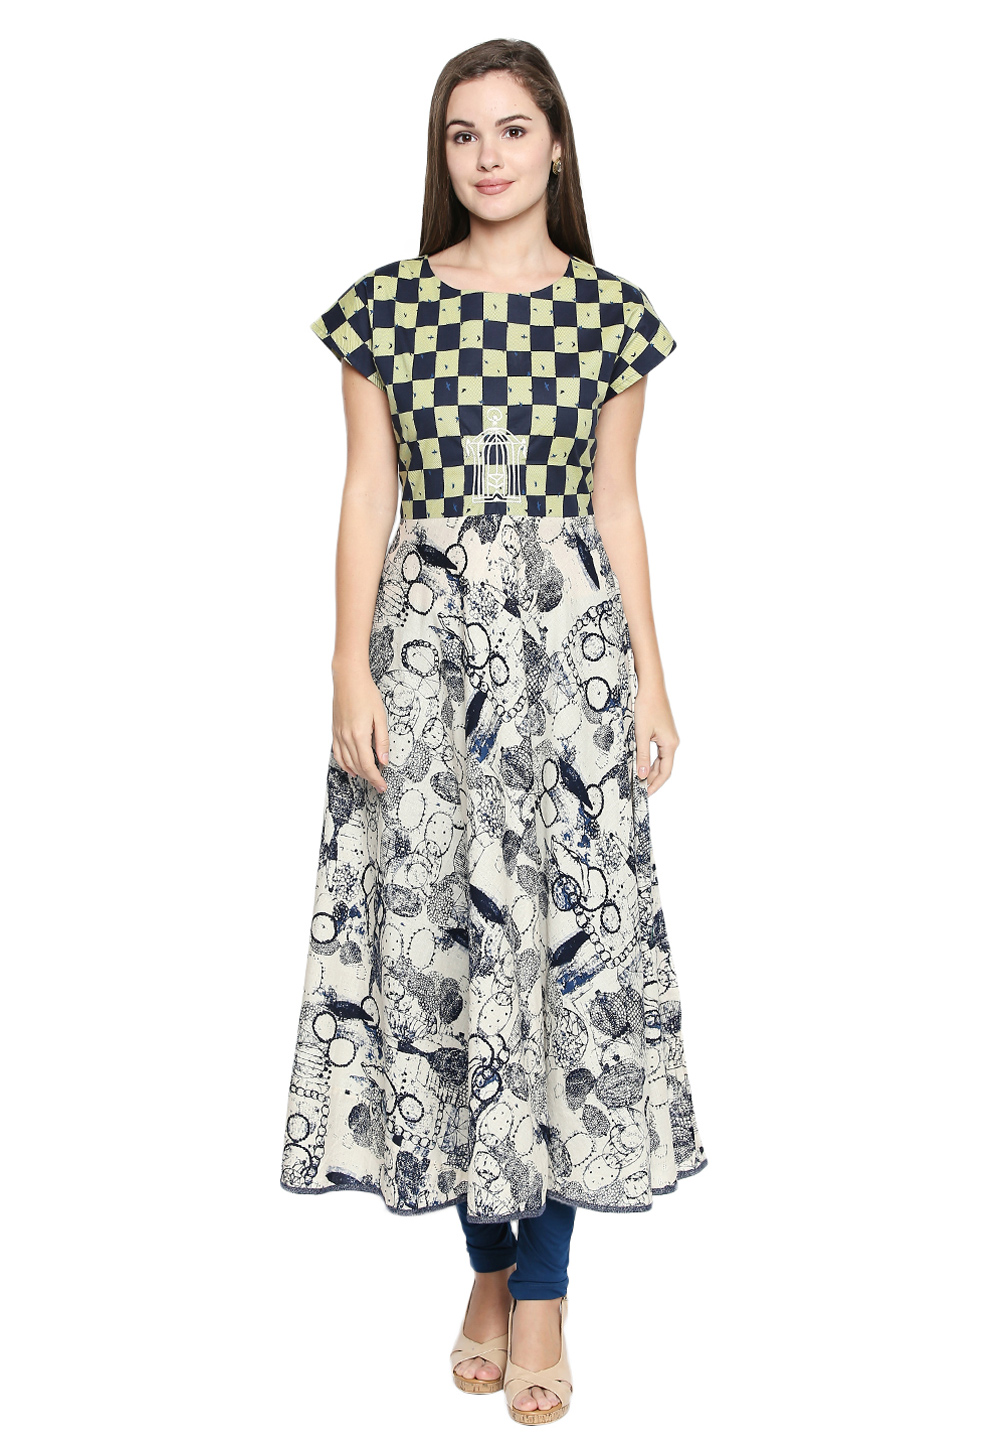 Off White Cotton Readymade Printed Tunic 170205